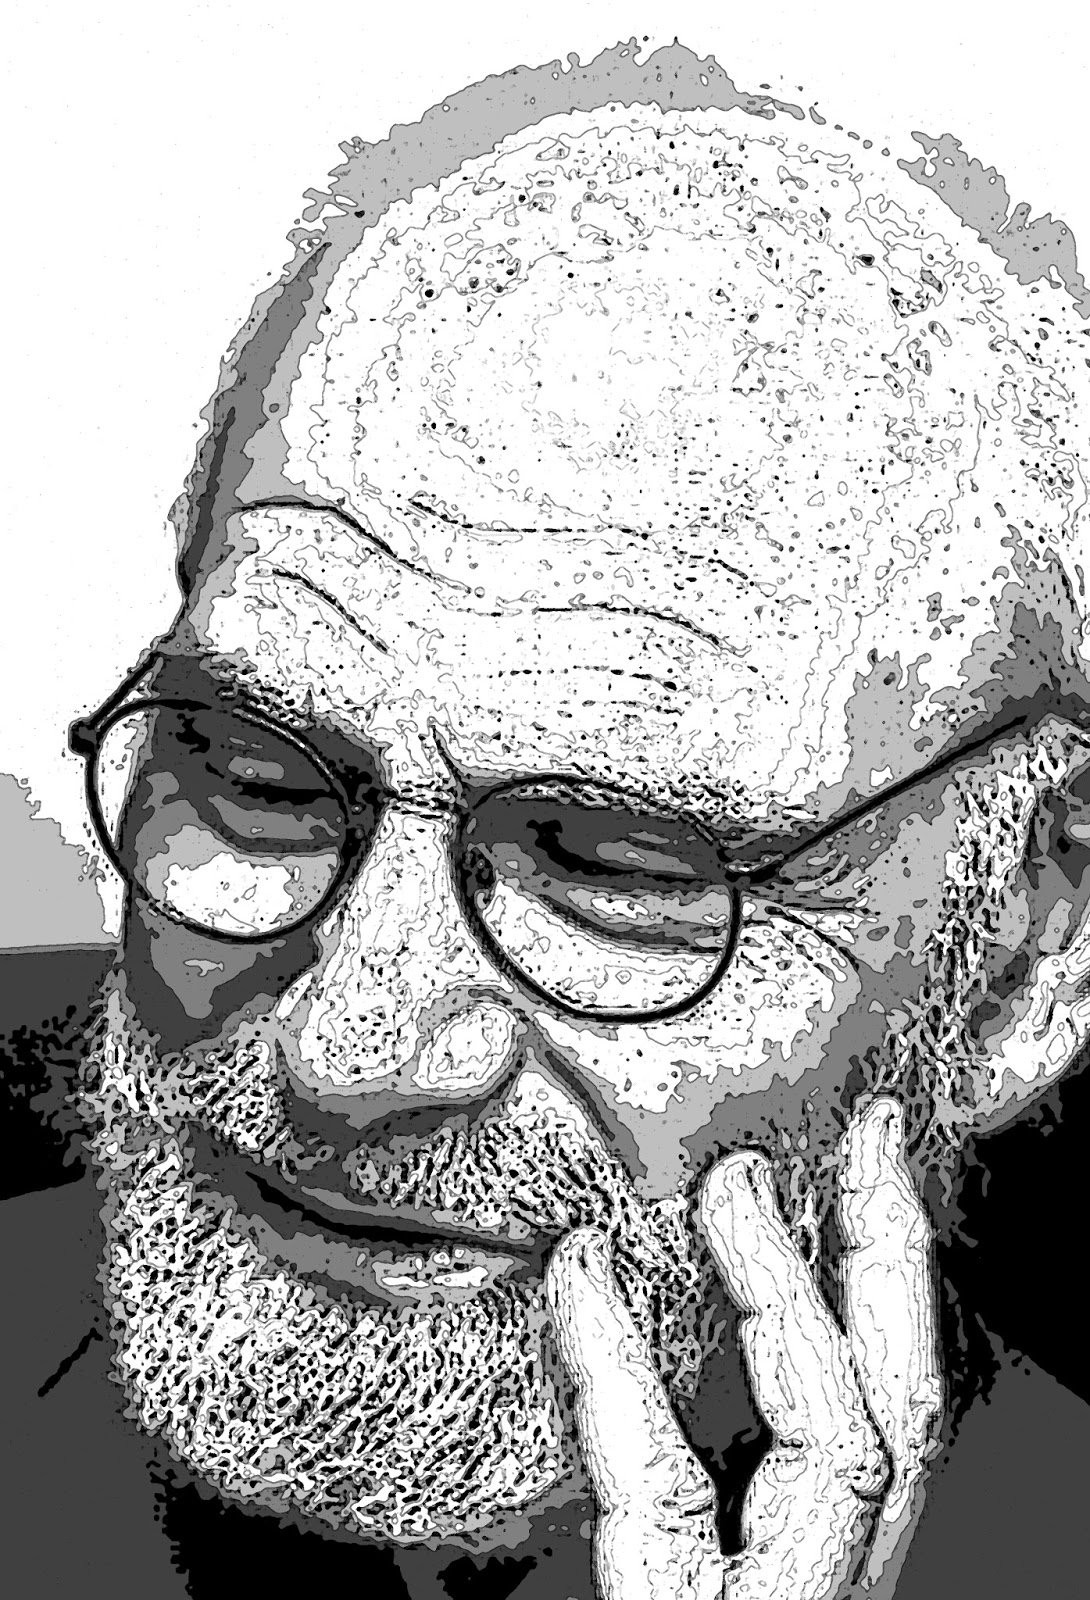 essay a surgeon s life by oliver sacks The essays have a tender honesty that reminds us that even though he was a great physician and writer, he was also one of us, with all the joy, sadness, and gratitude that comes when we live life fully.